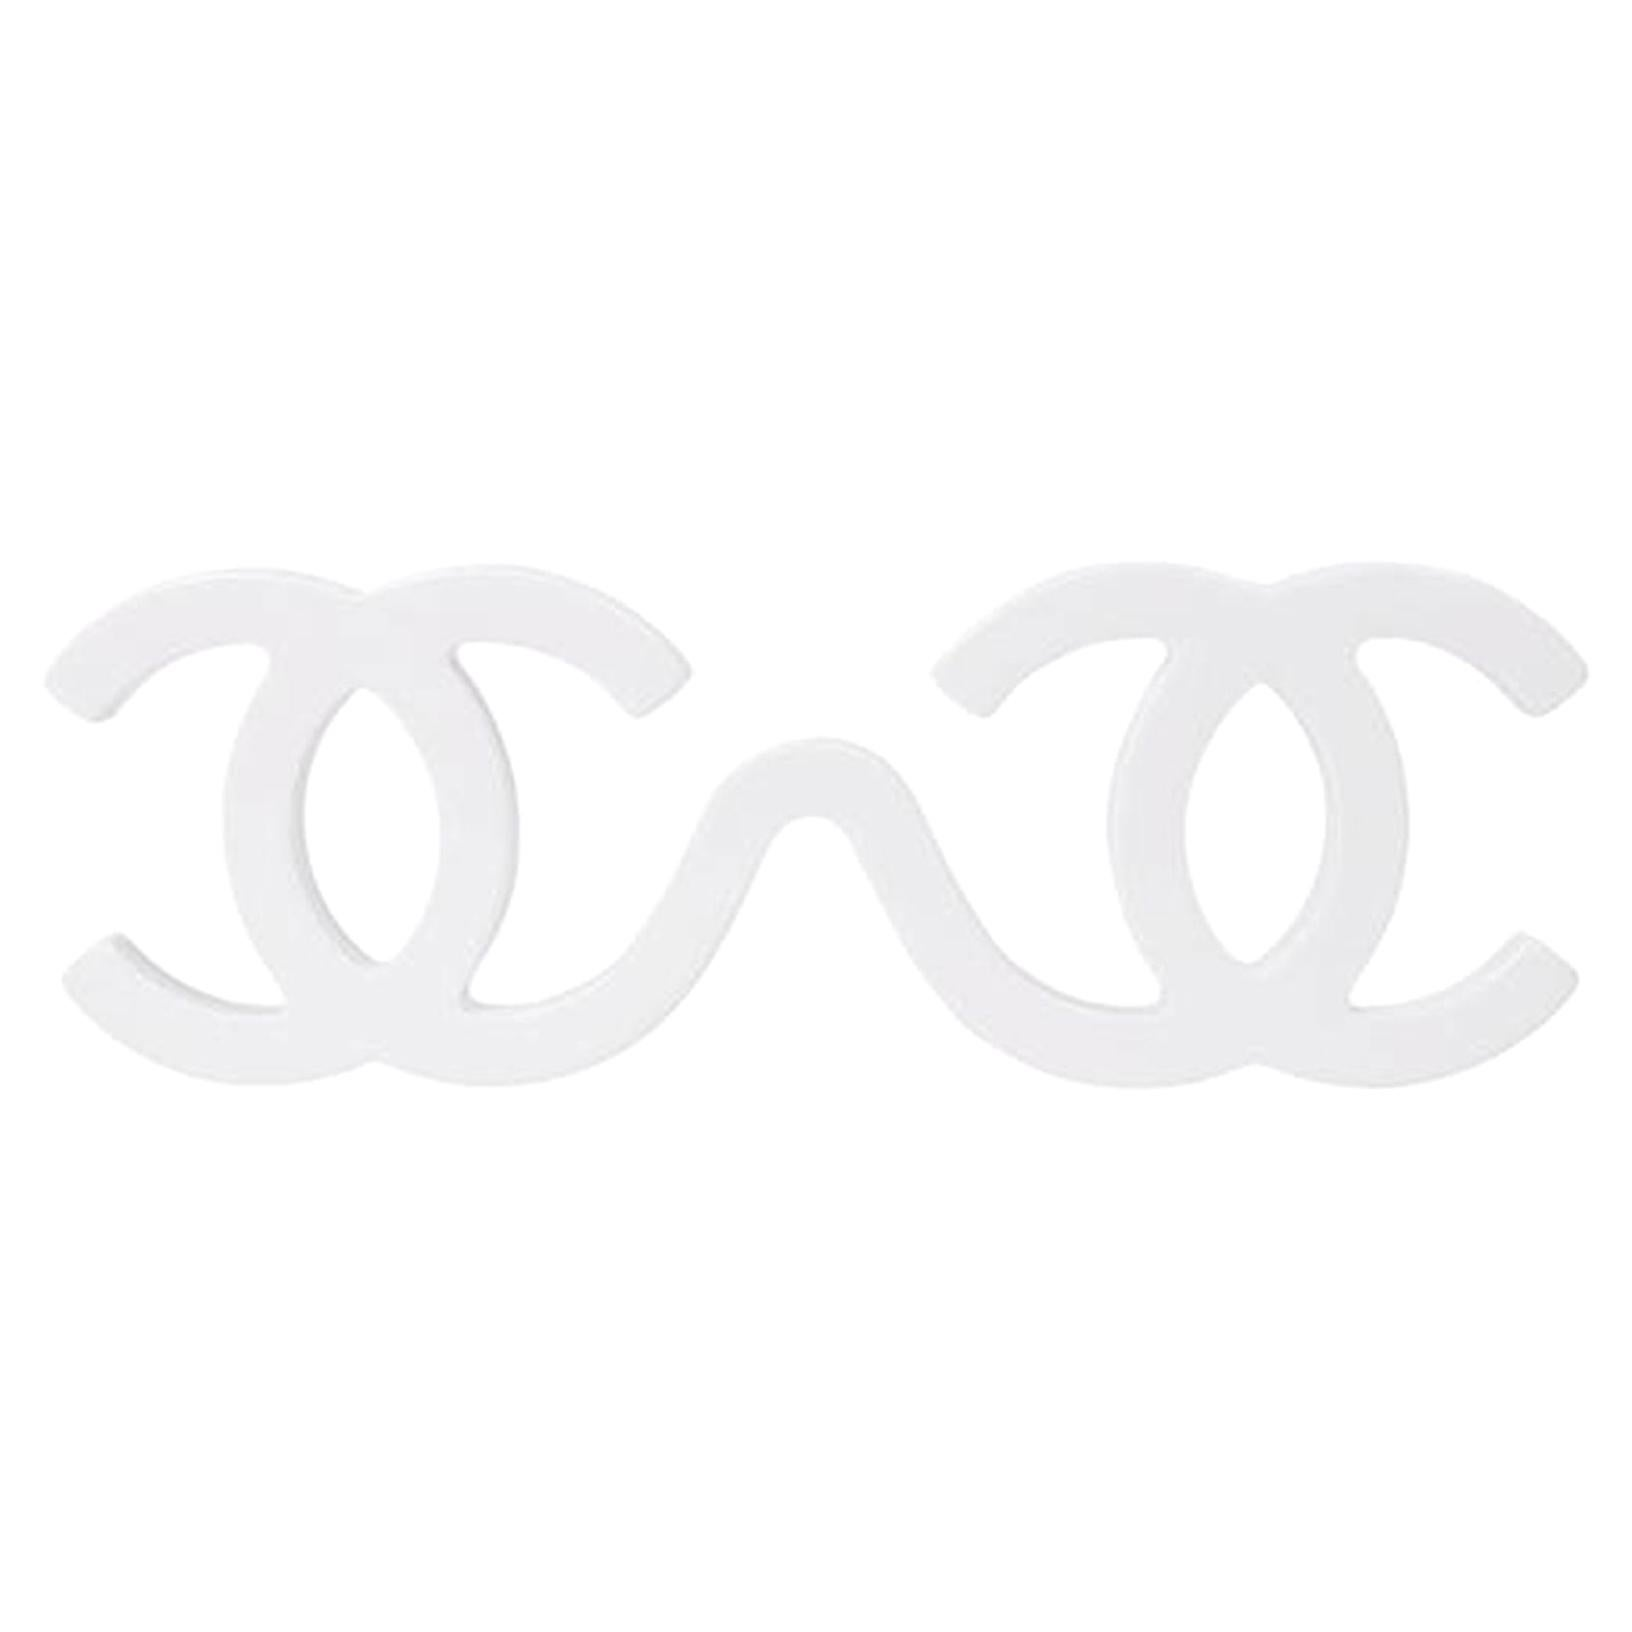 Chanel White 1994 Cc Runway Sunglasses